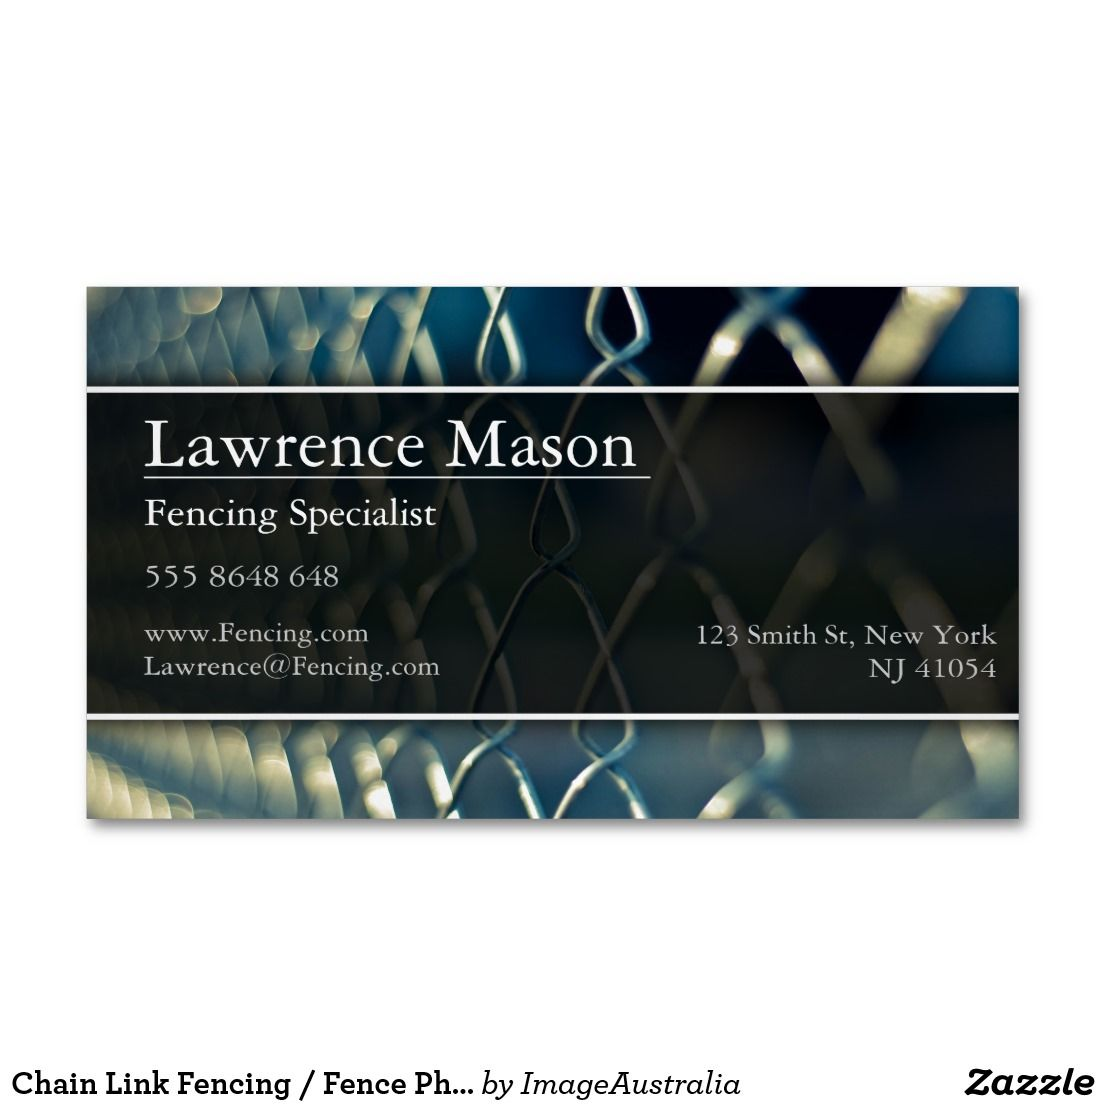 Chain Link Fencing Fence Photo Business Card Magnetic Business Cards Printing Business Cards Photo Business Cards